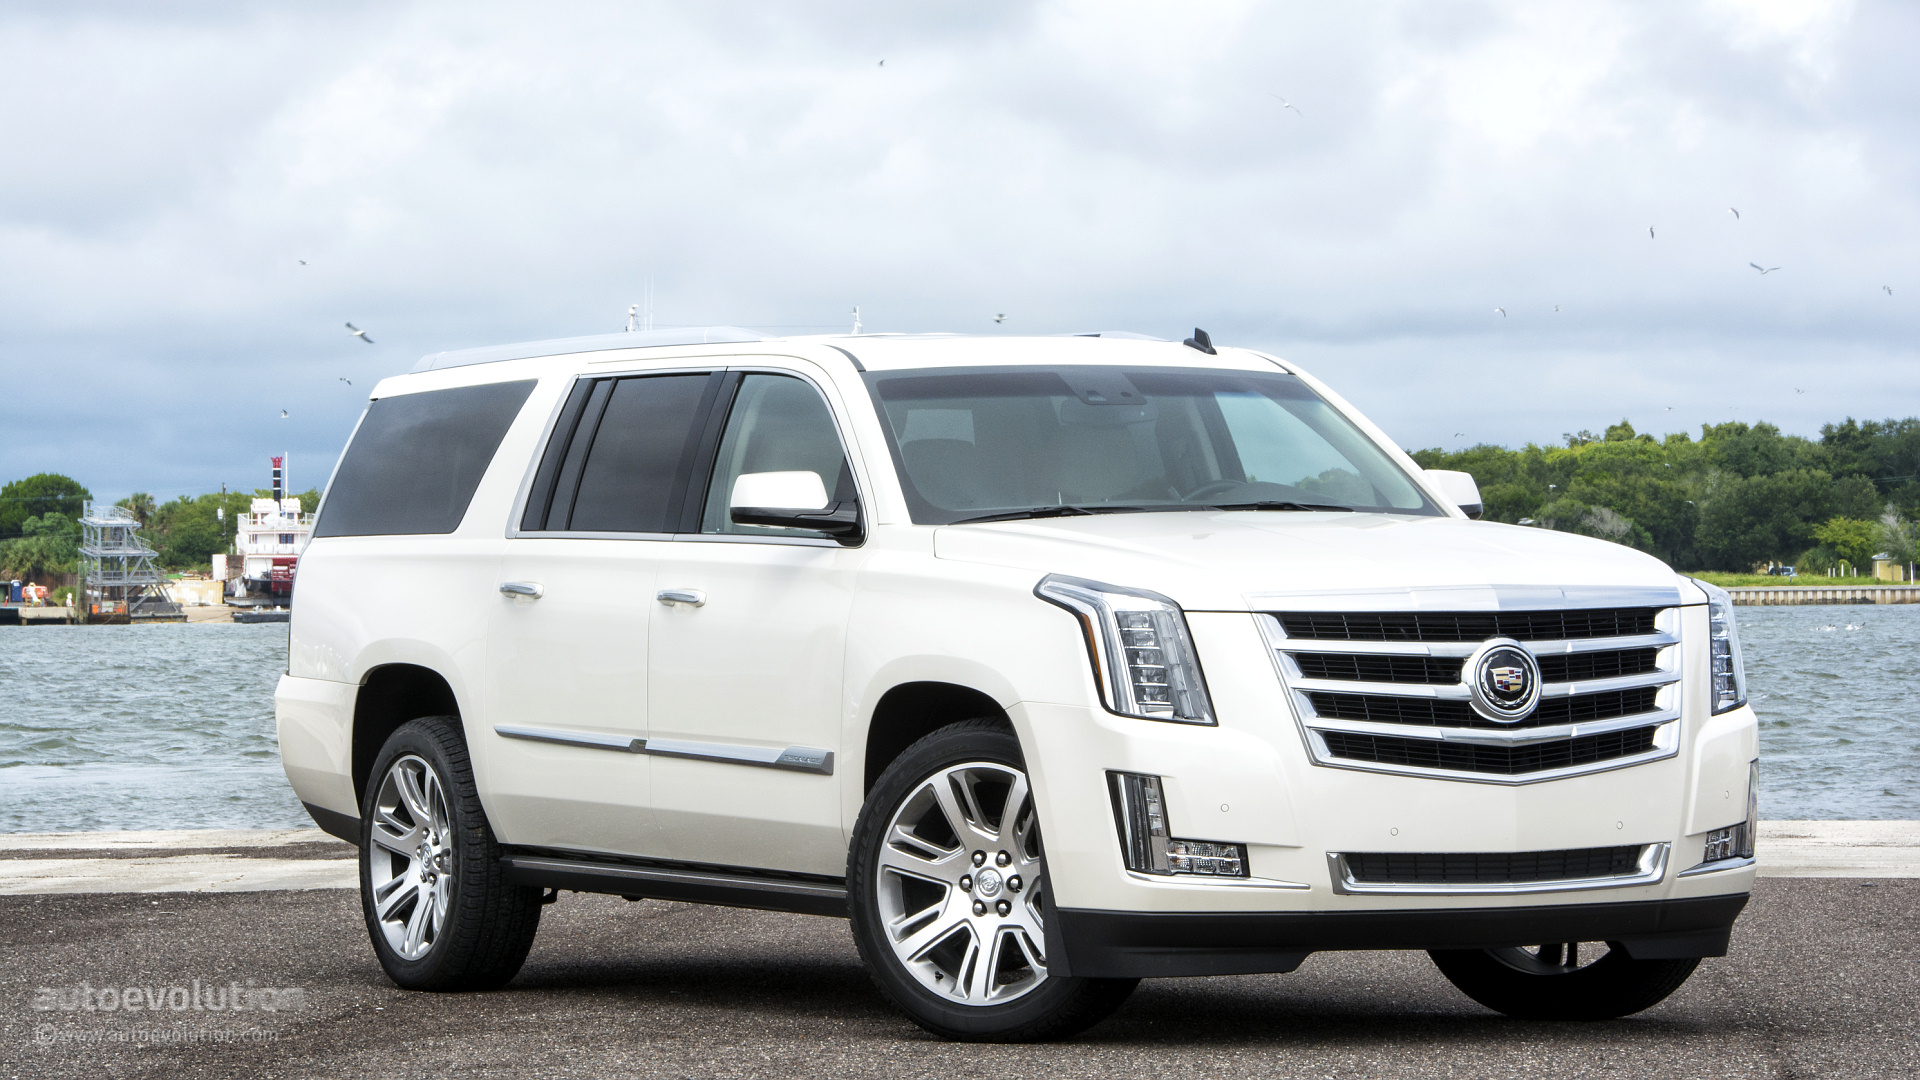 2017 Cadillac Escalade Hd Wallpapers When Luxury Meets Full Size Suv Capability